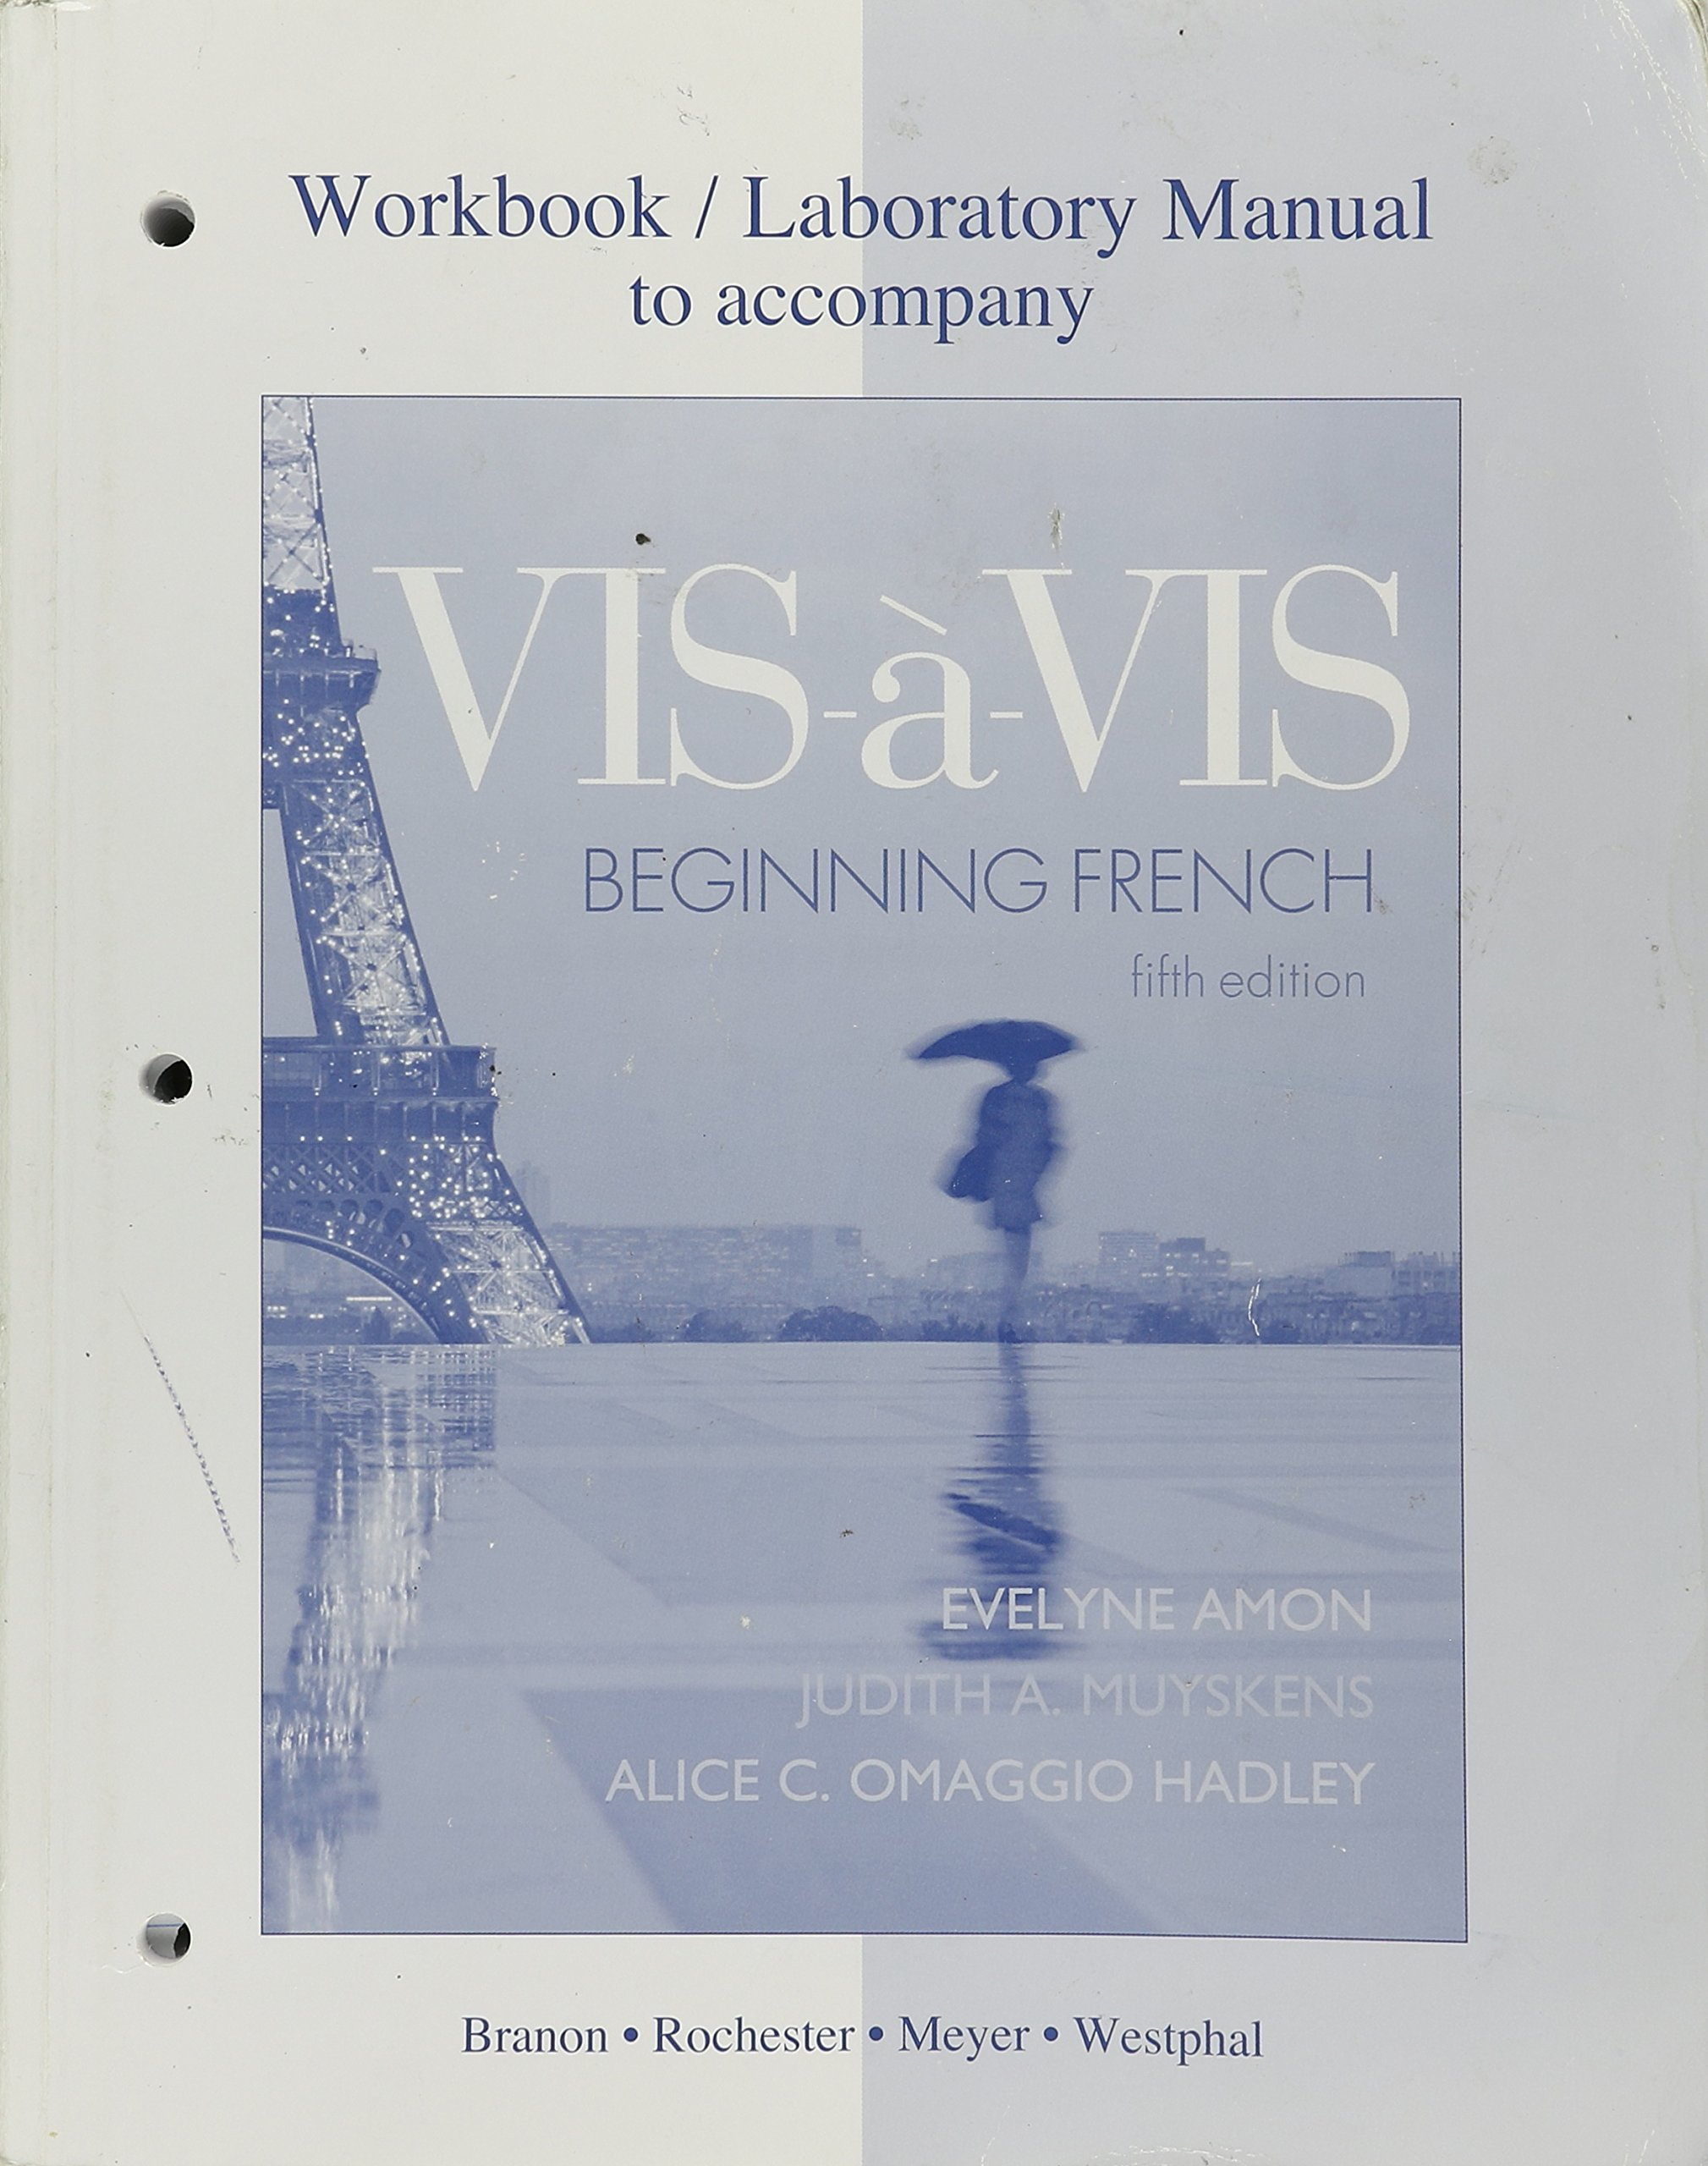 Workbook/Lab Manual to accompany Vis-à-vis: Beginning French 5th (fifth)  edition: Evelyne Amon: 8580713421955: Amazon.com: Books